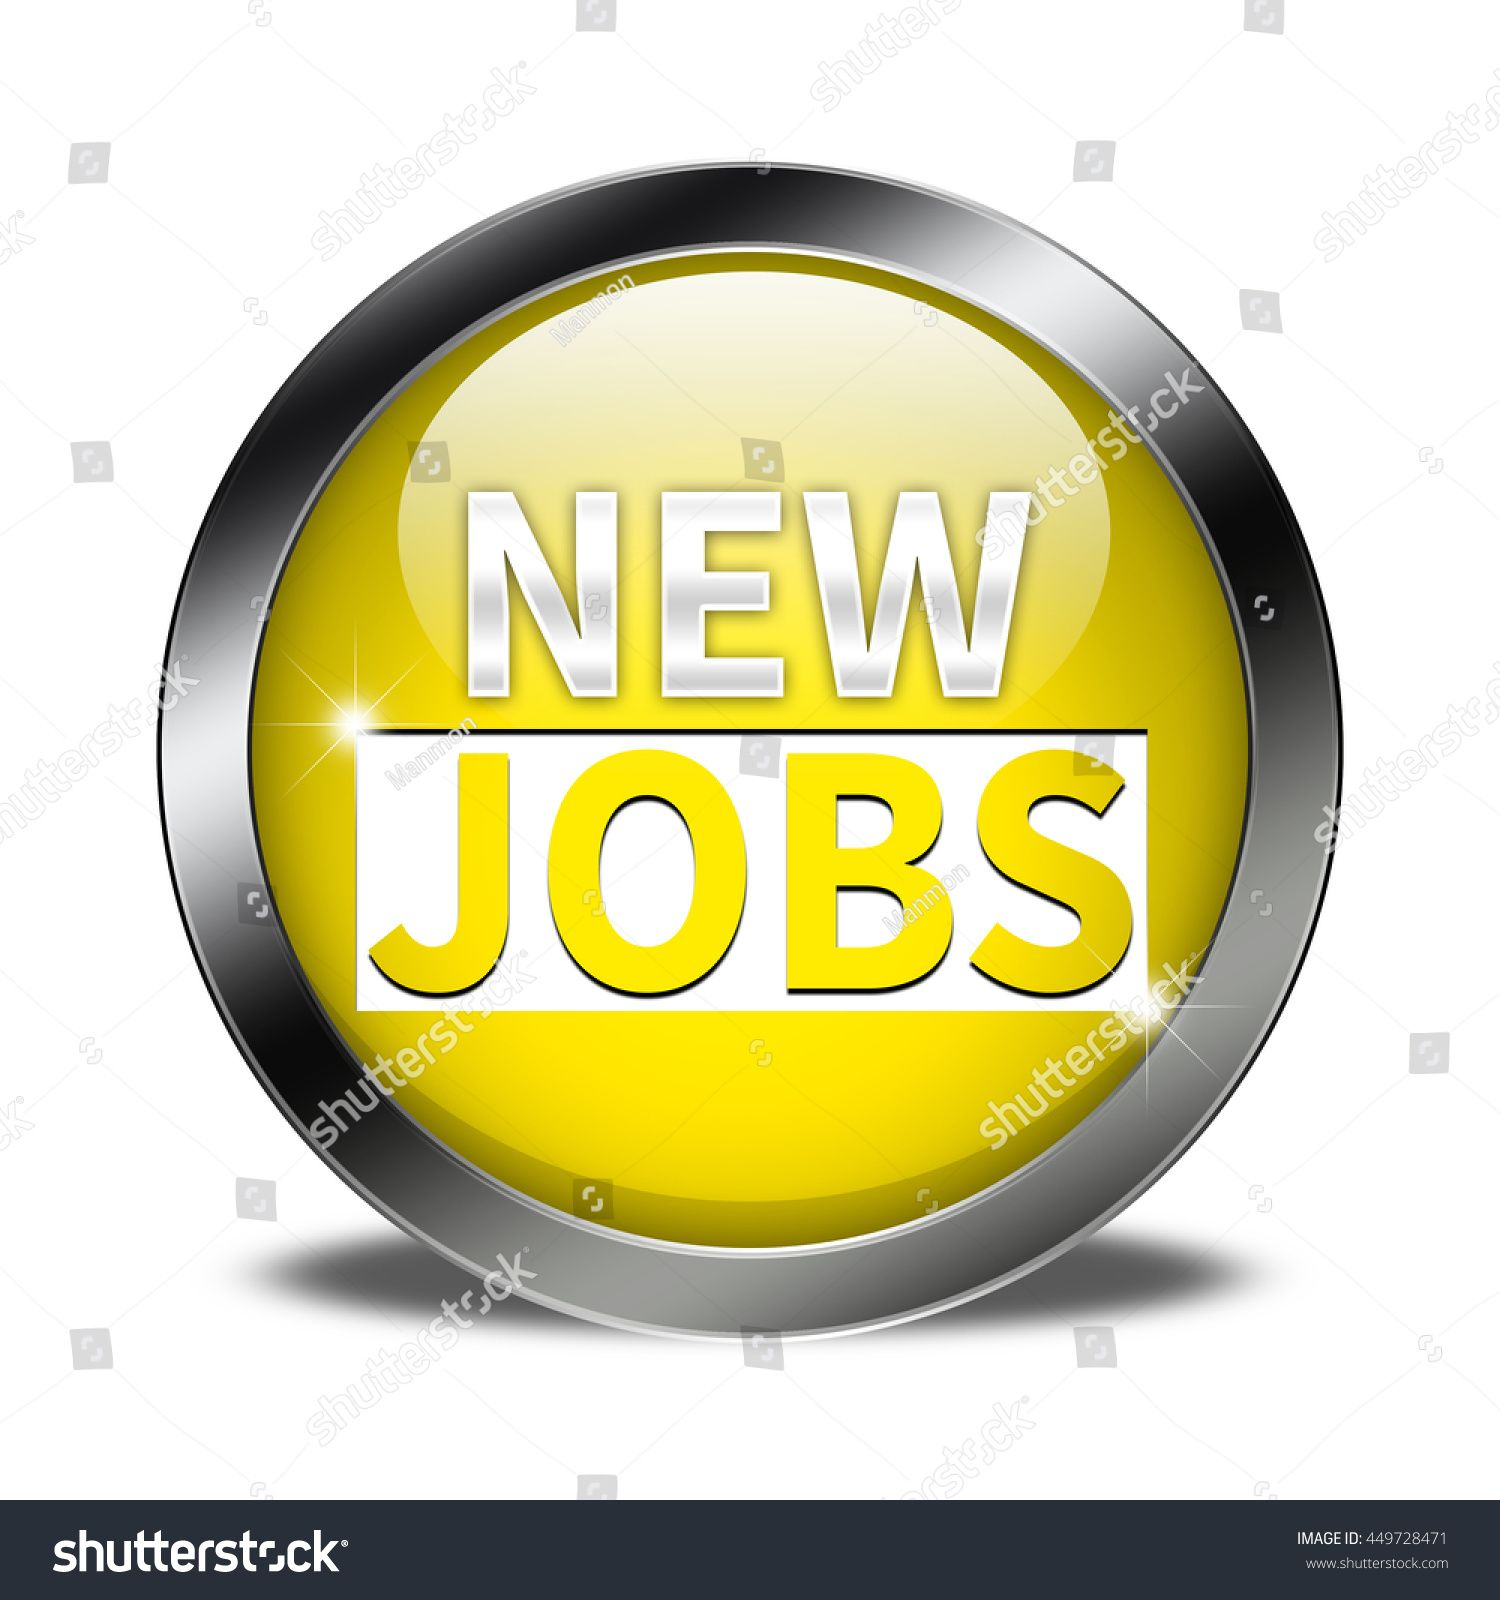 New jobs button isolated #Sponsored , #affiliate, #jobs#button#isolated